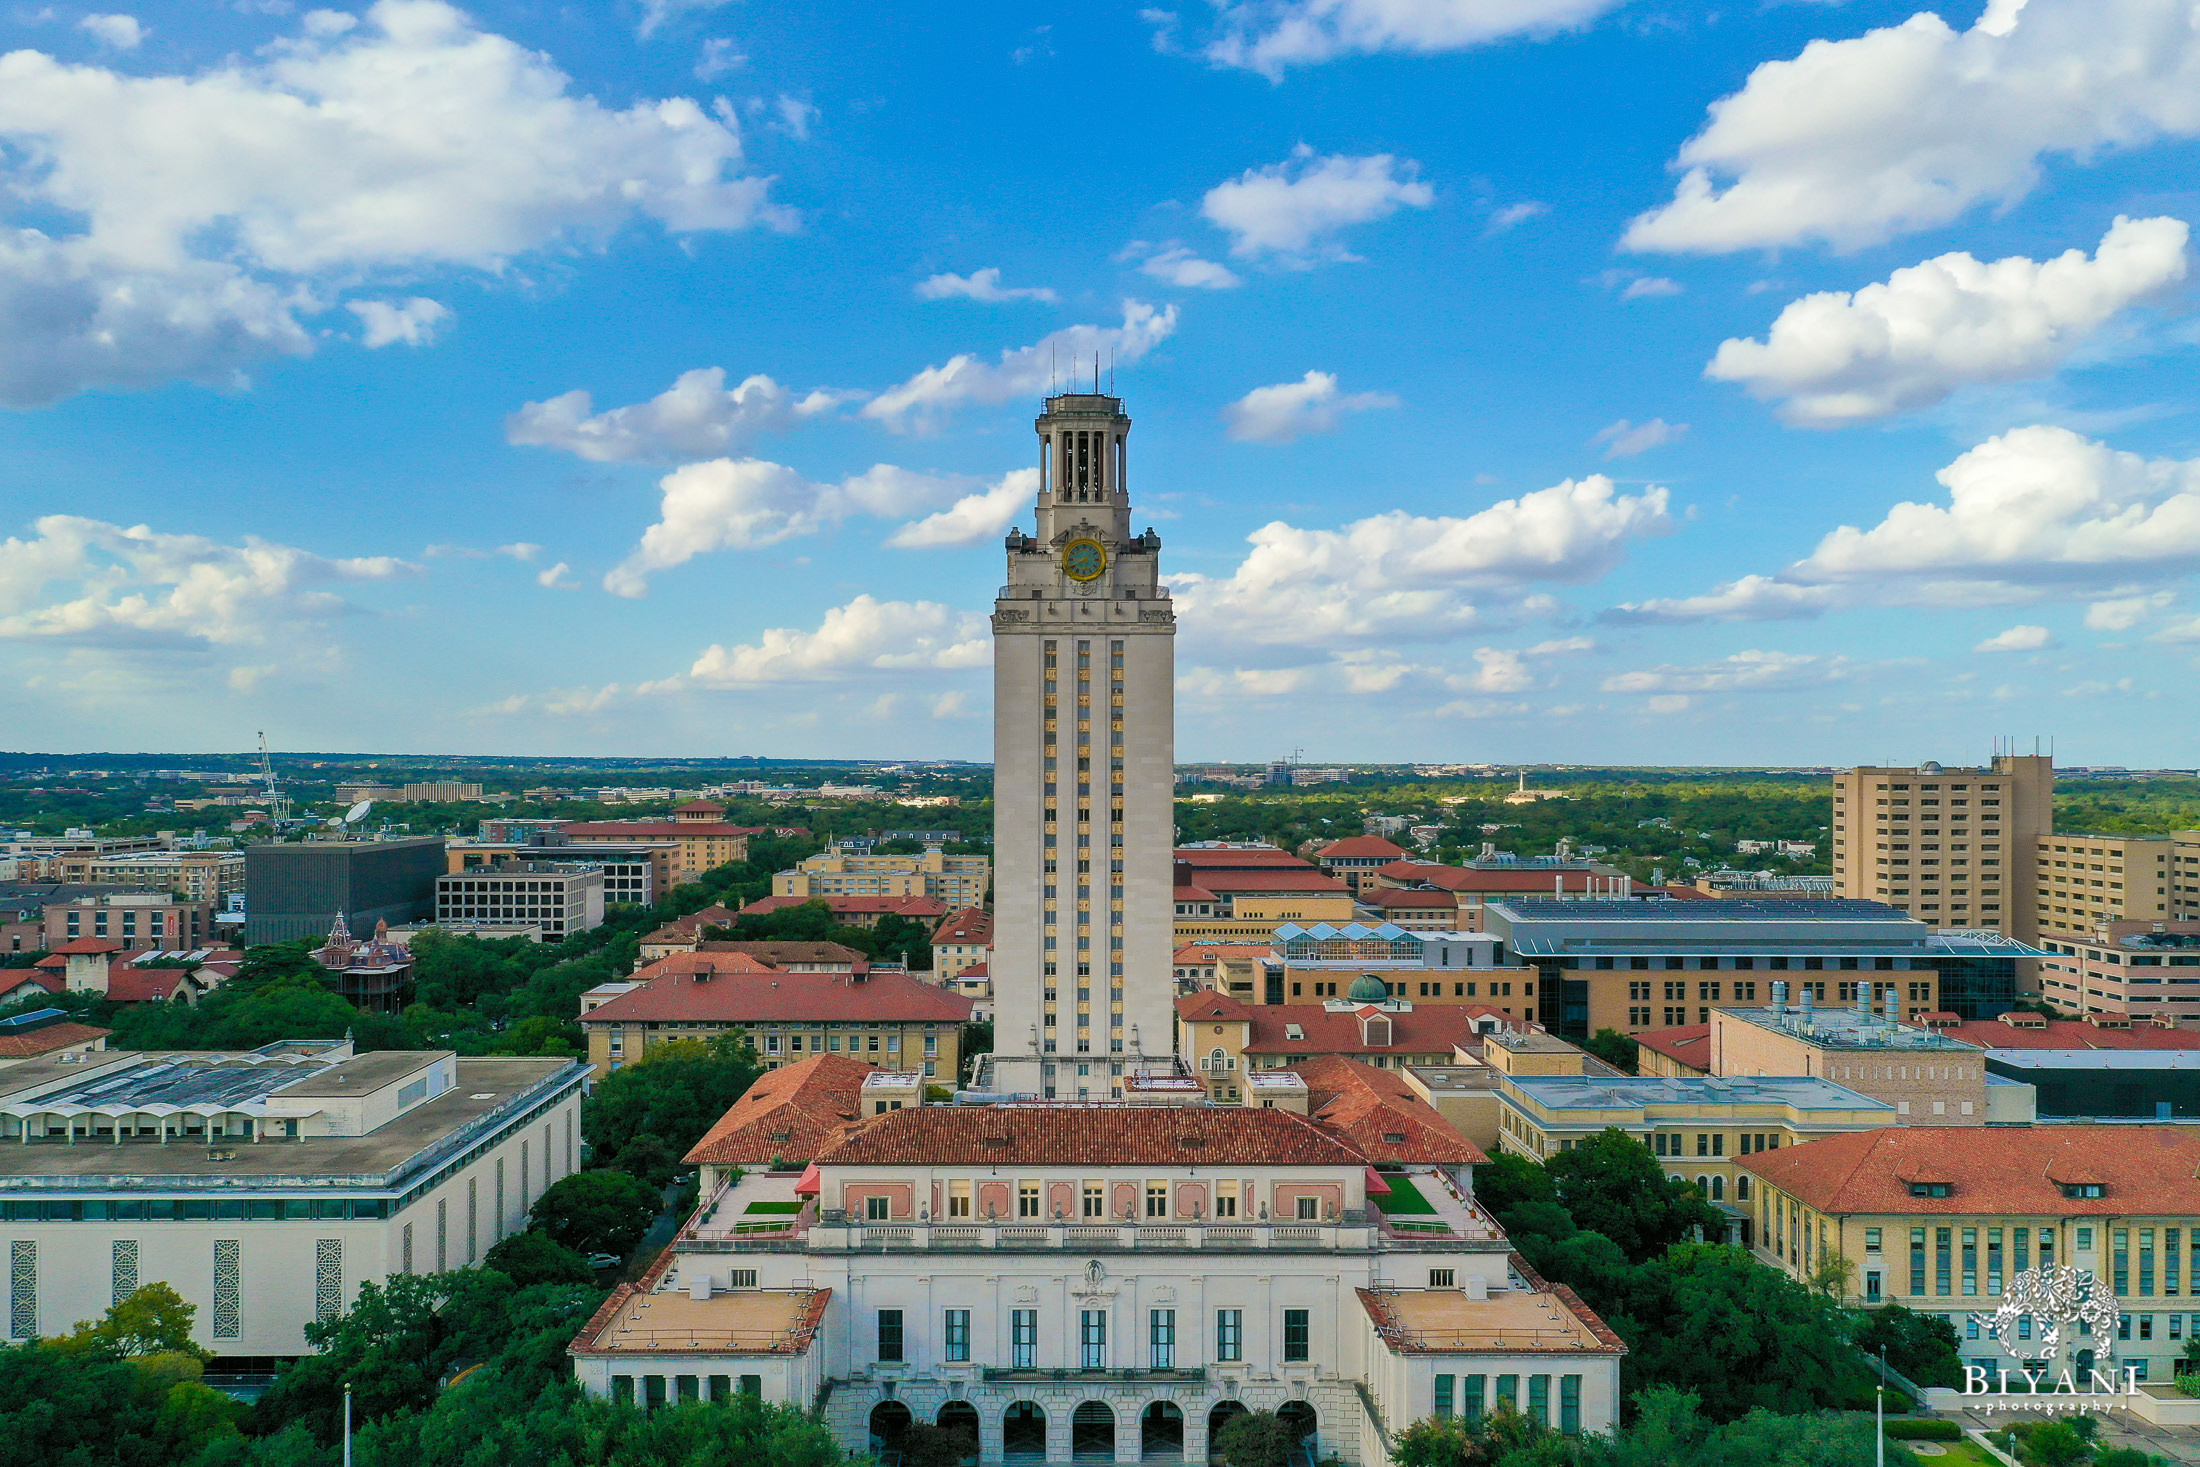 drone photo  from the sky of of University of Texas, Austin campus tower